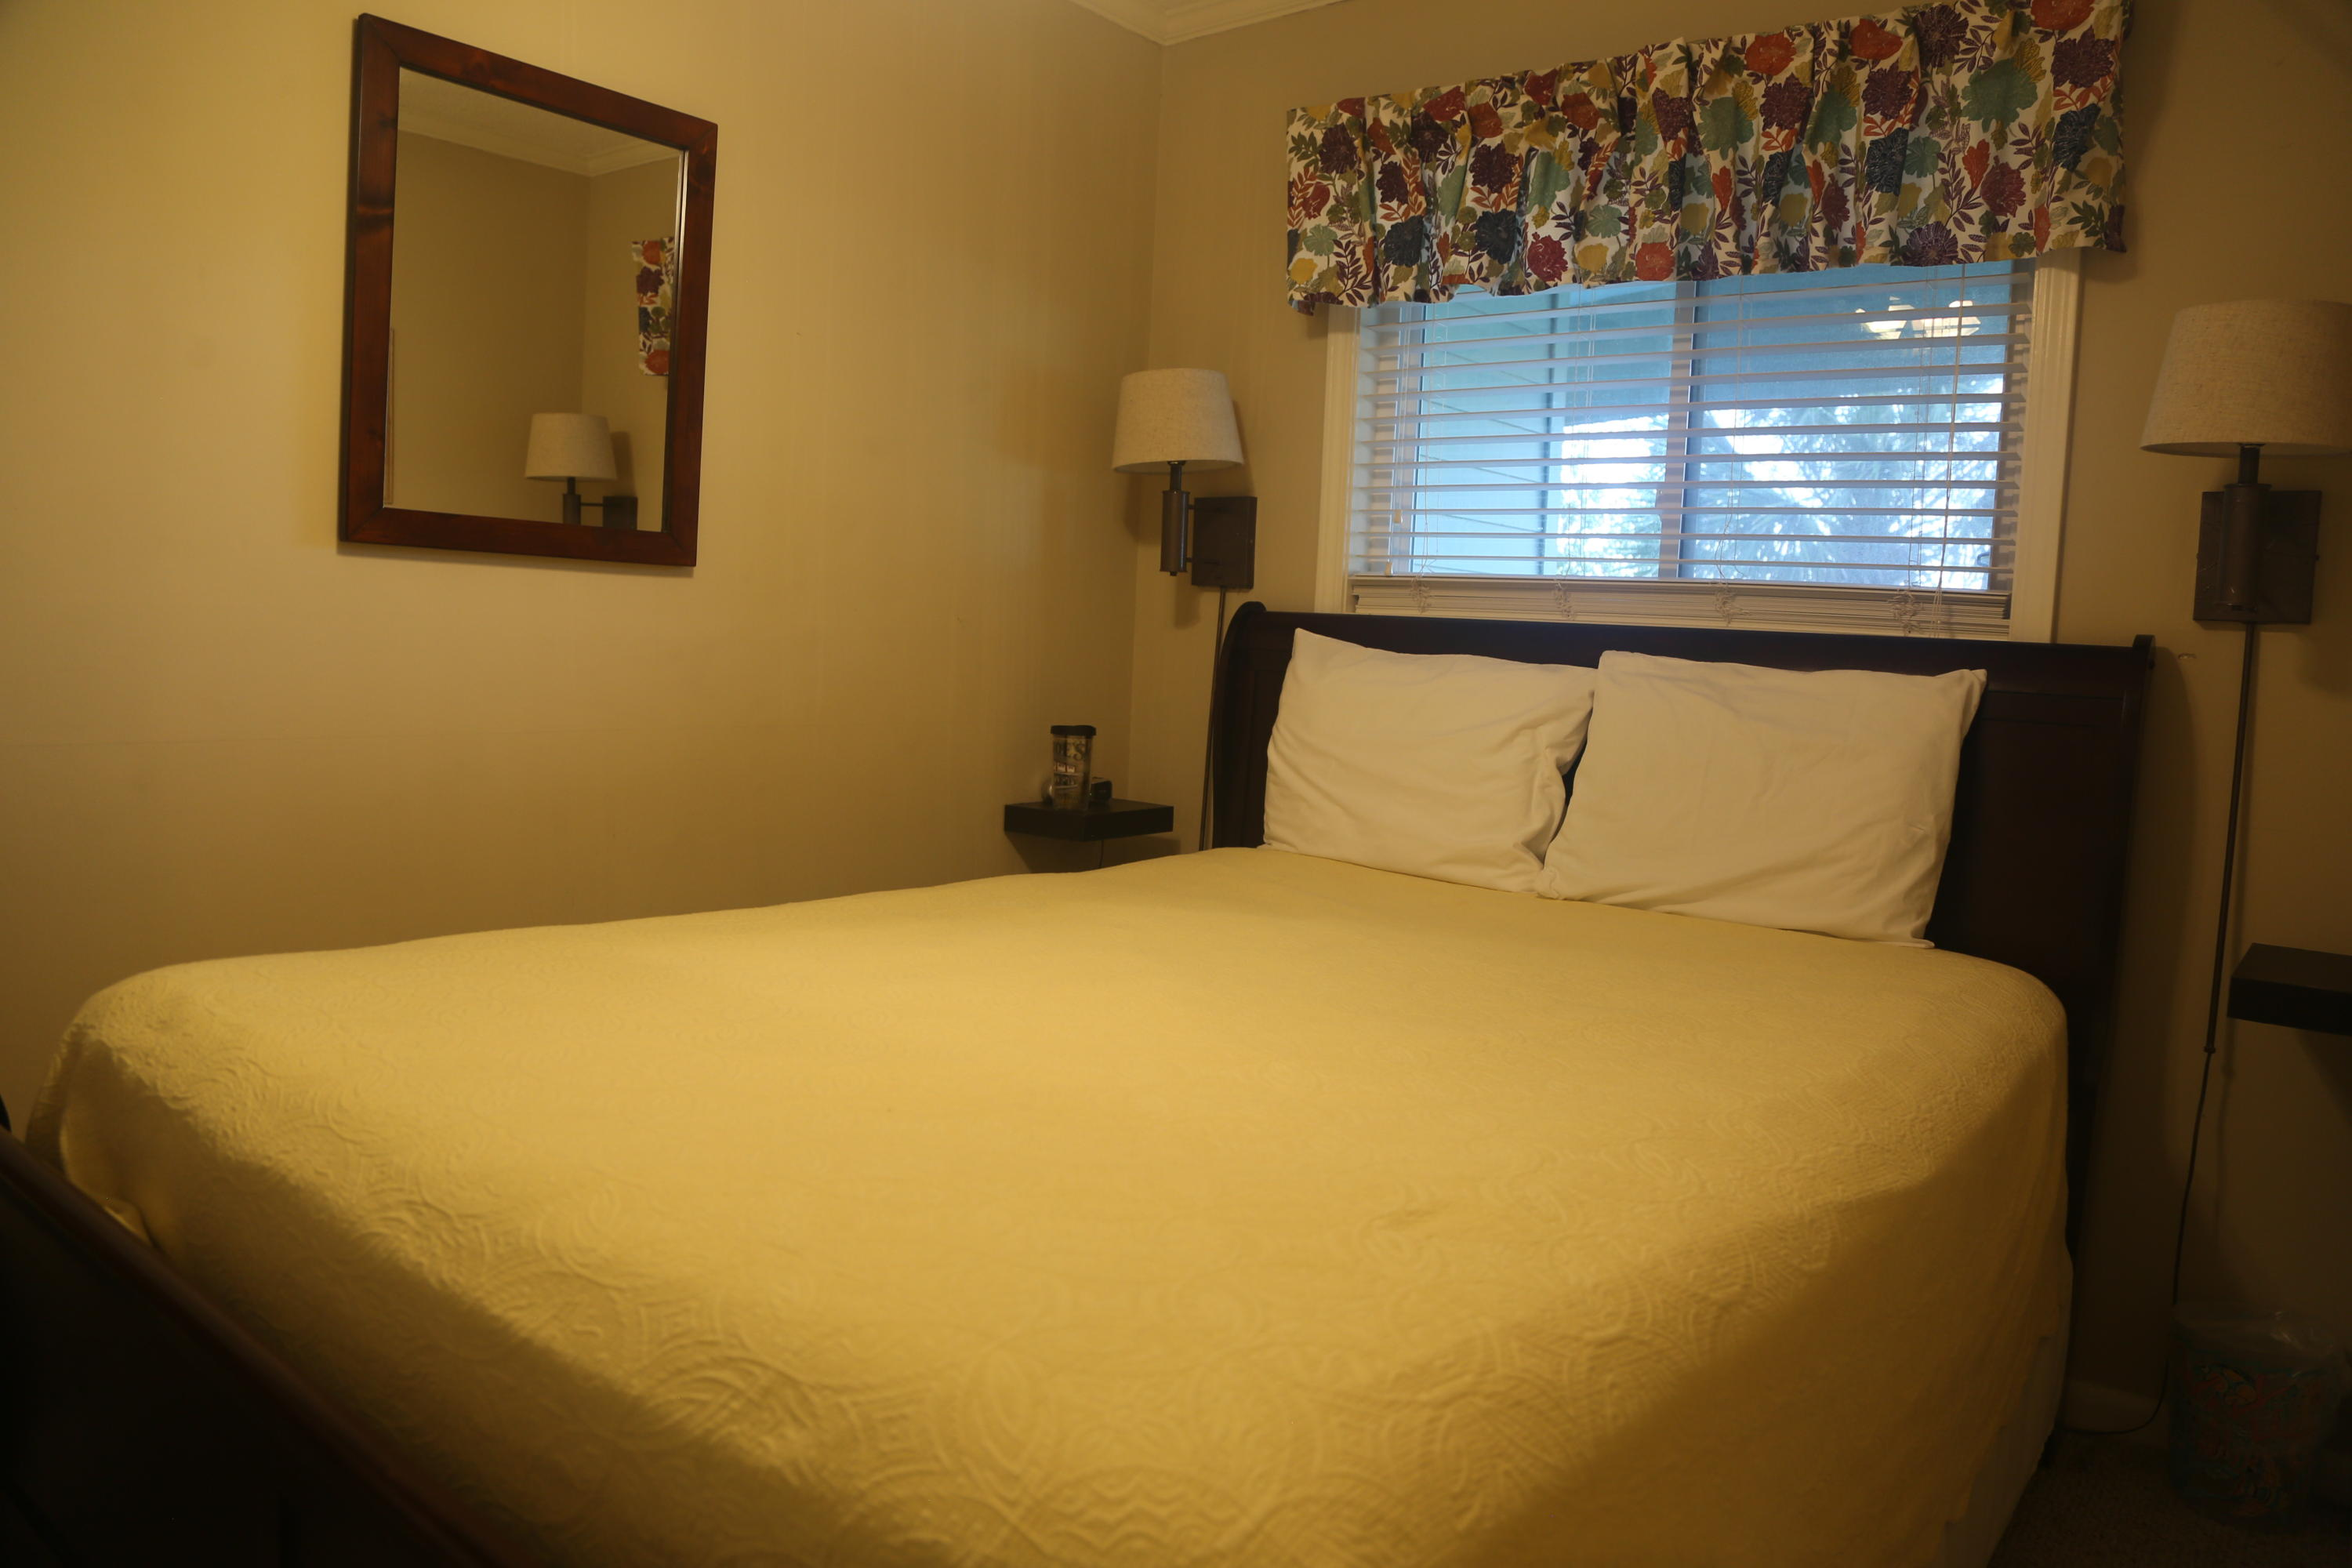 Sea Cabin On The Ocean Homes For Sale - 1300 Ocean, Isle of Palms, SC - 51